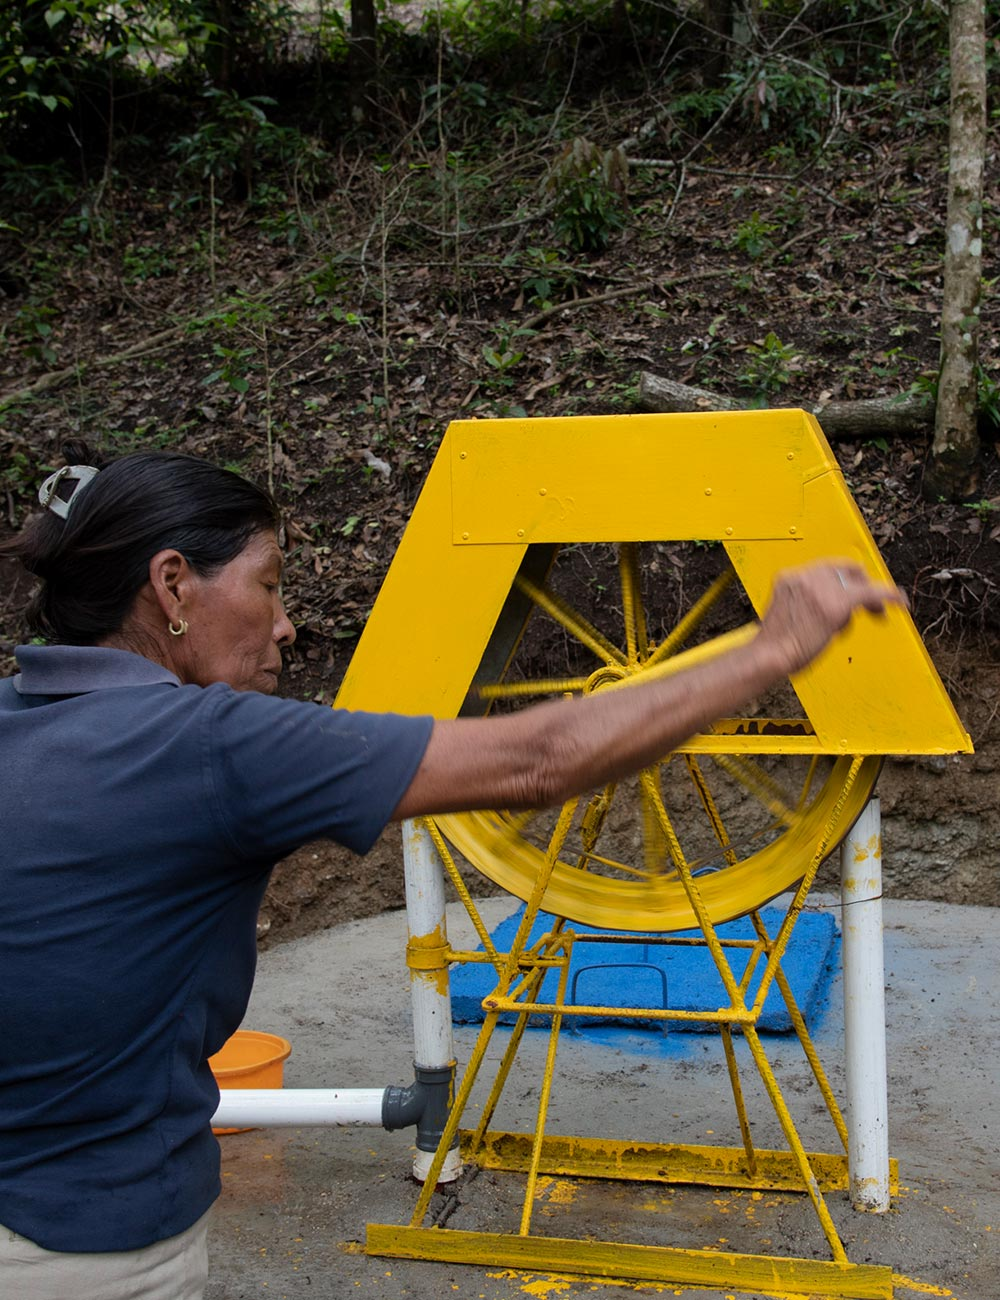 Clean Water Access - Totogalpa, Nicaragua, 8 wells covered or refurbished, 437 people received access to clean water.